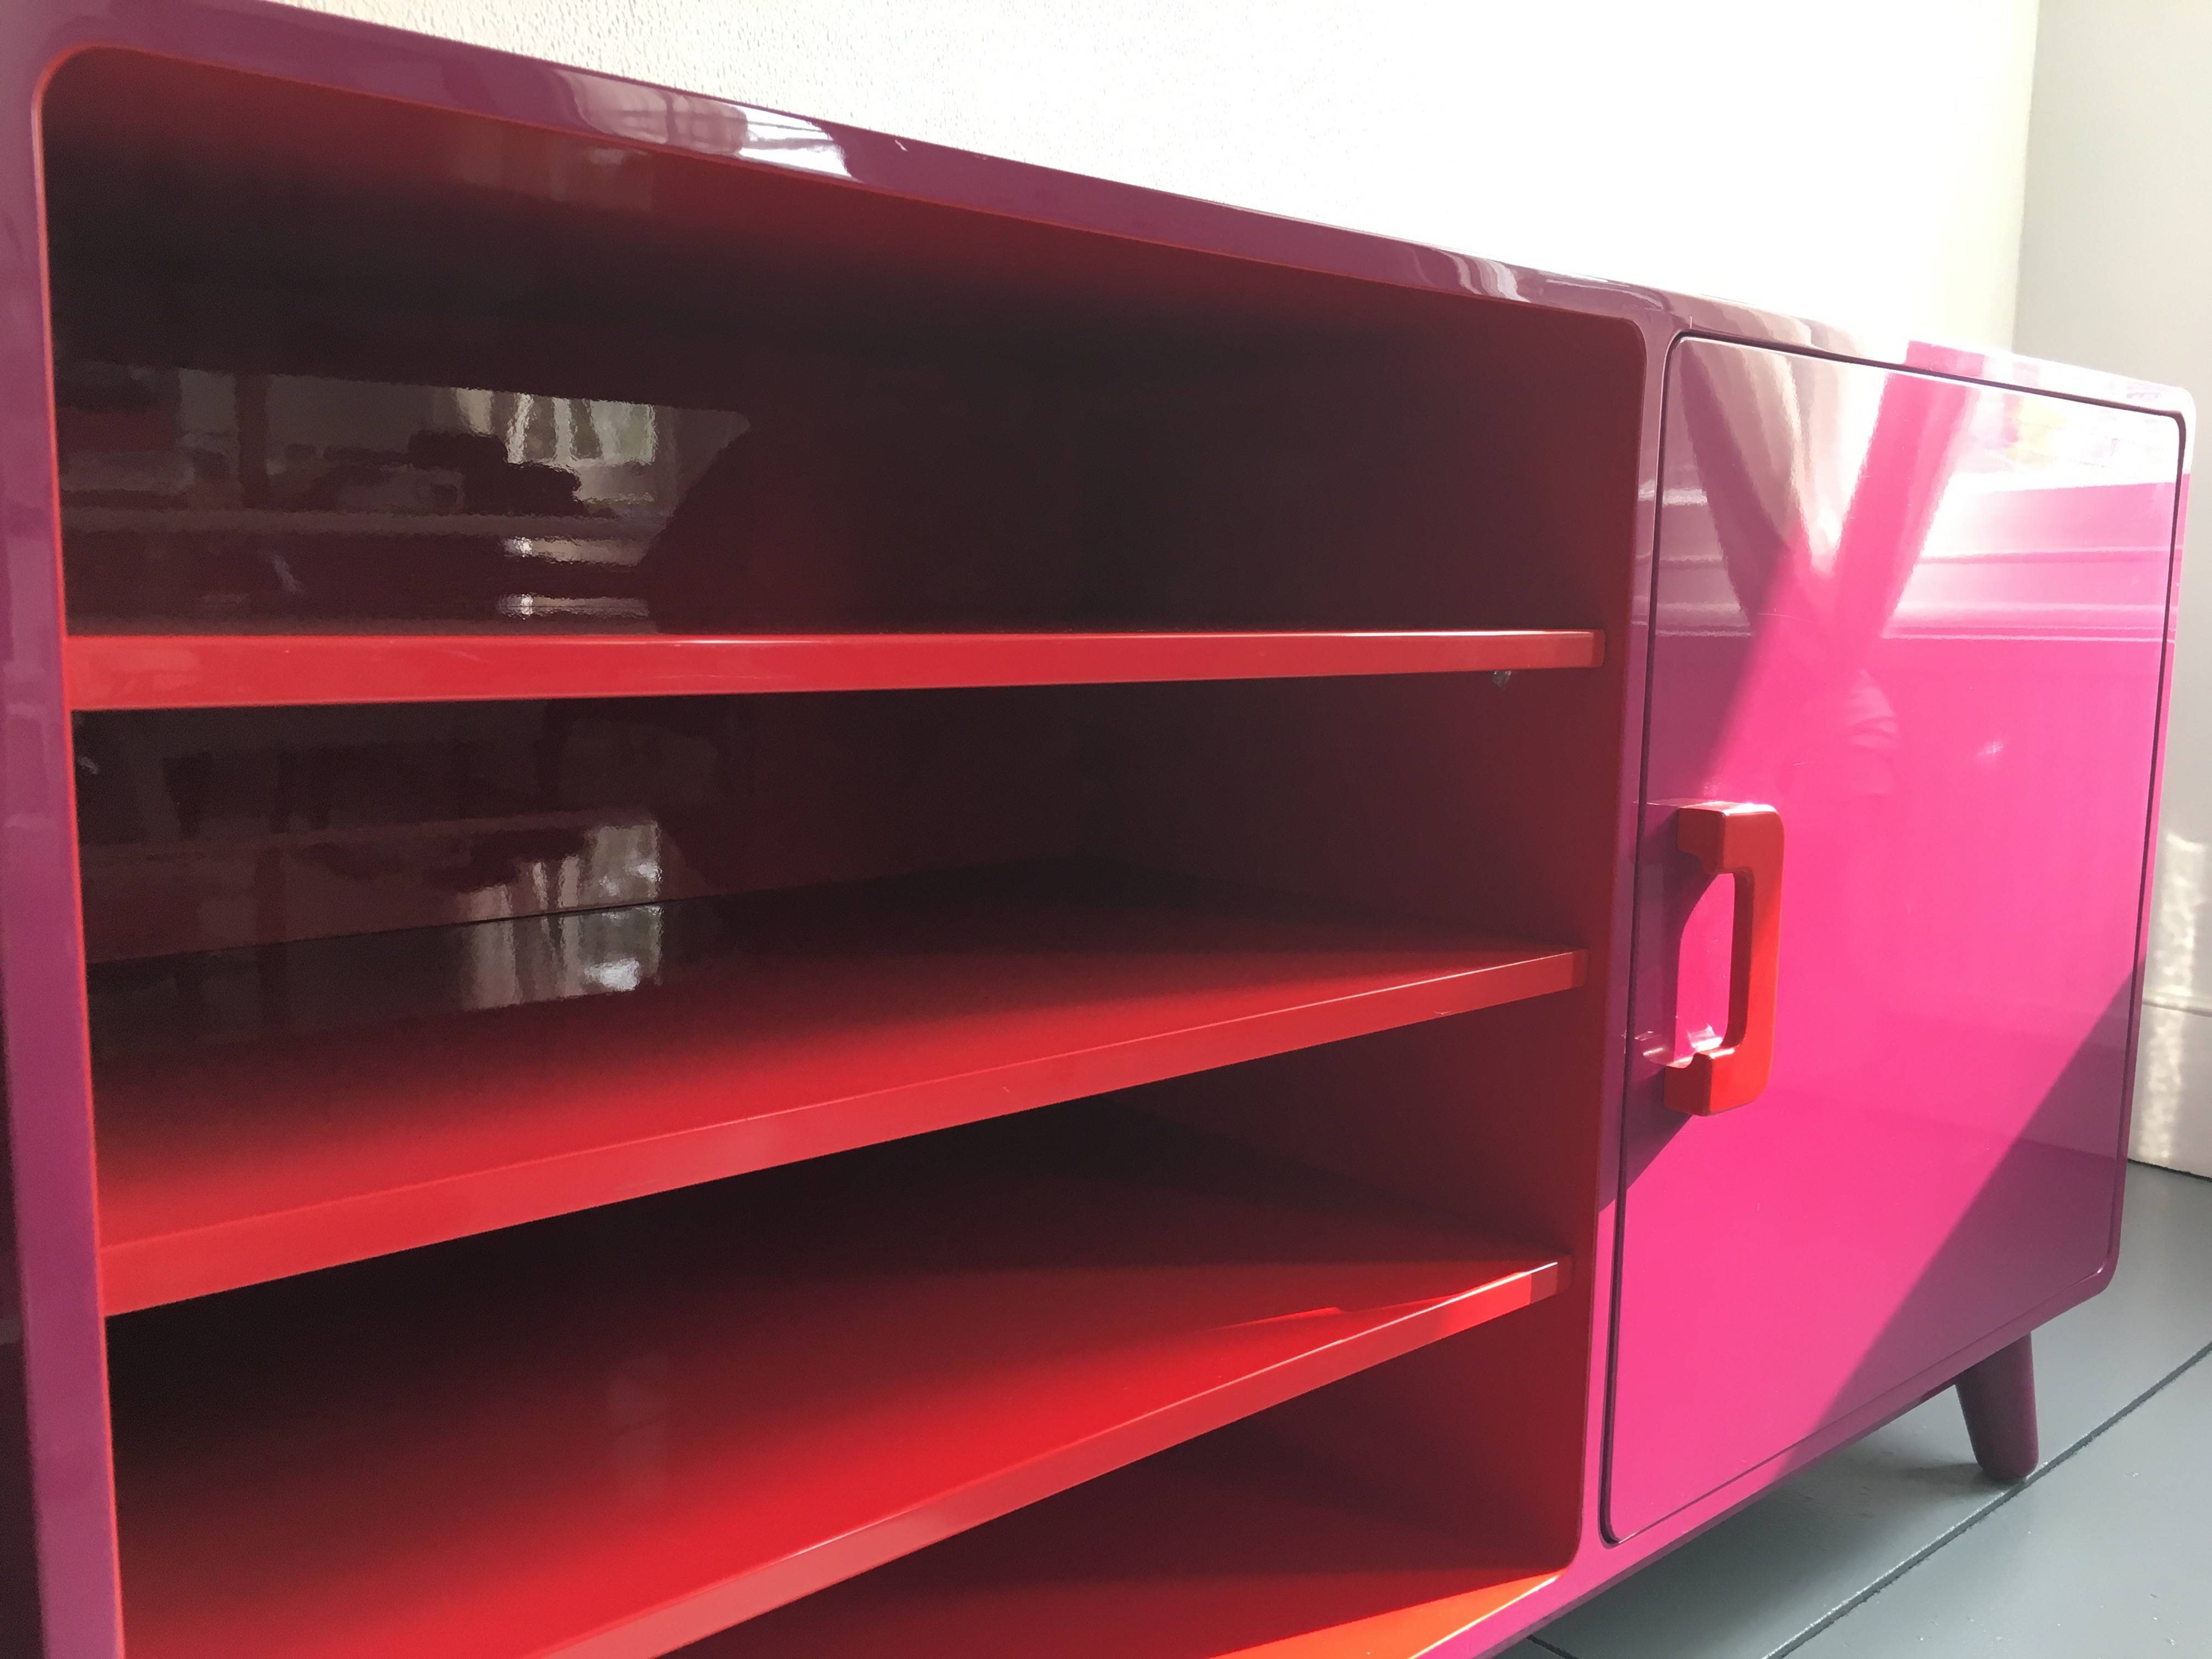 60's Inspired High Gloss Lacquered Sideboard In Hot Pink And Red with regard to Red High Gloss Sideboards (Image 7 of 30)